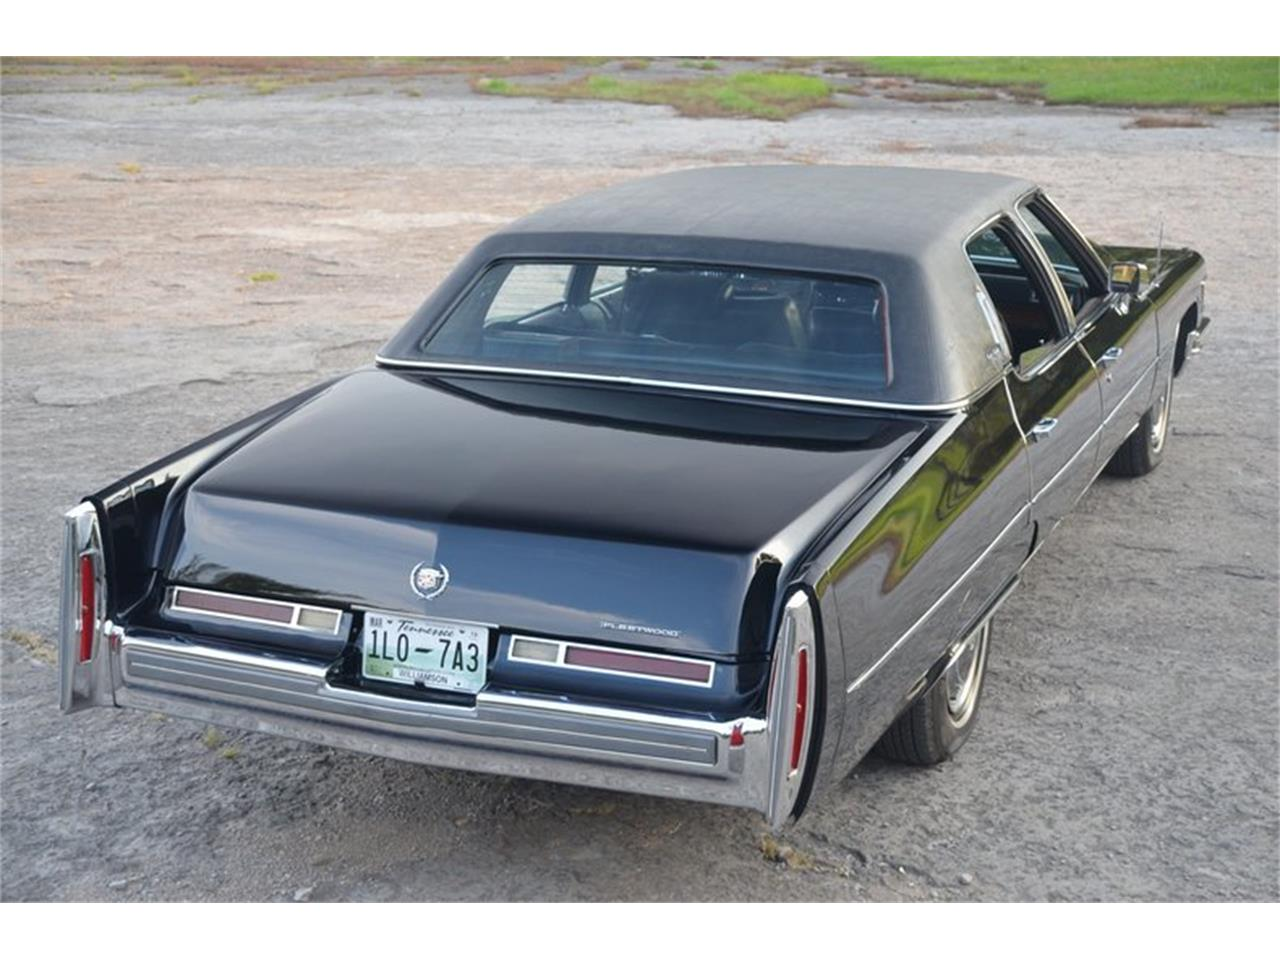 Large Picture of 1976 Cadillac Brougham located in Lebanon Tennessee Offered by Frazier Motor Car Company - NUFI